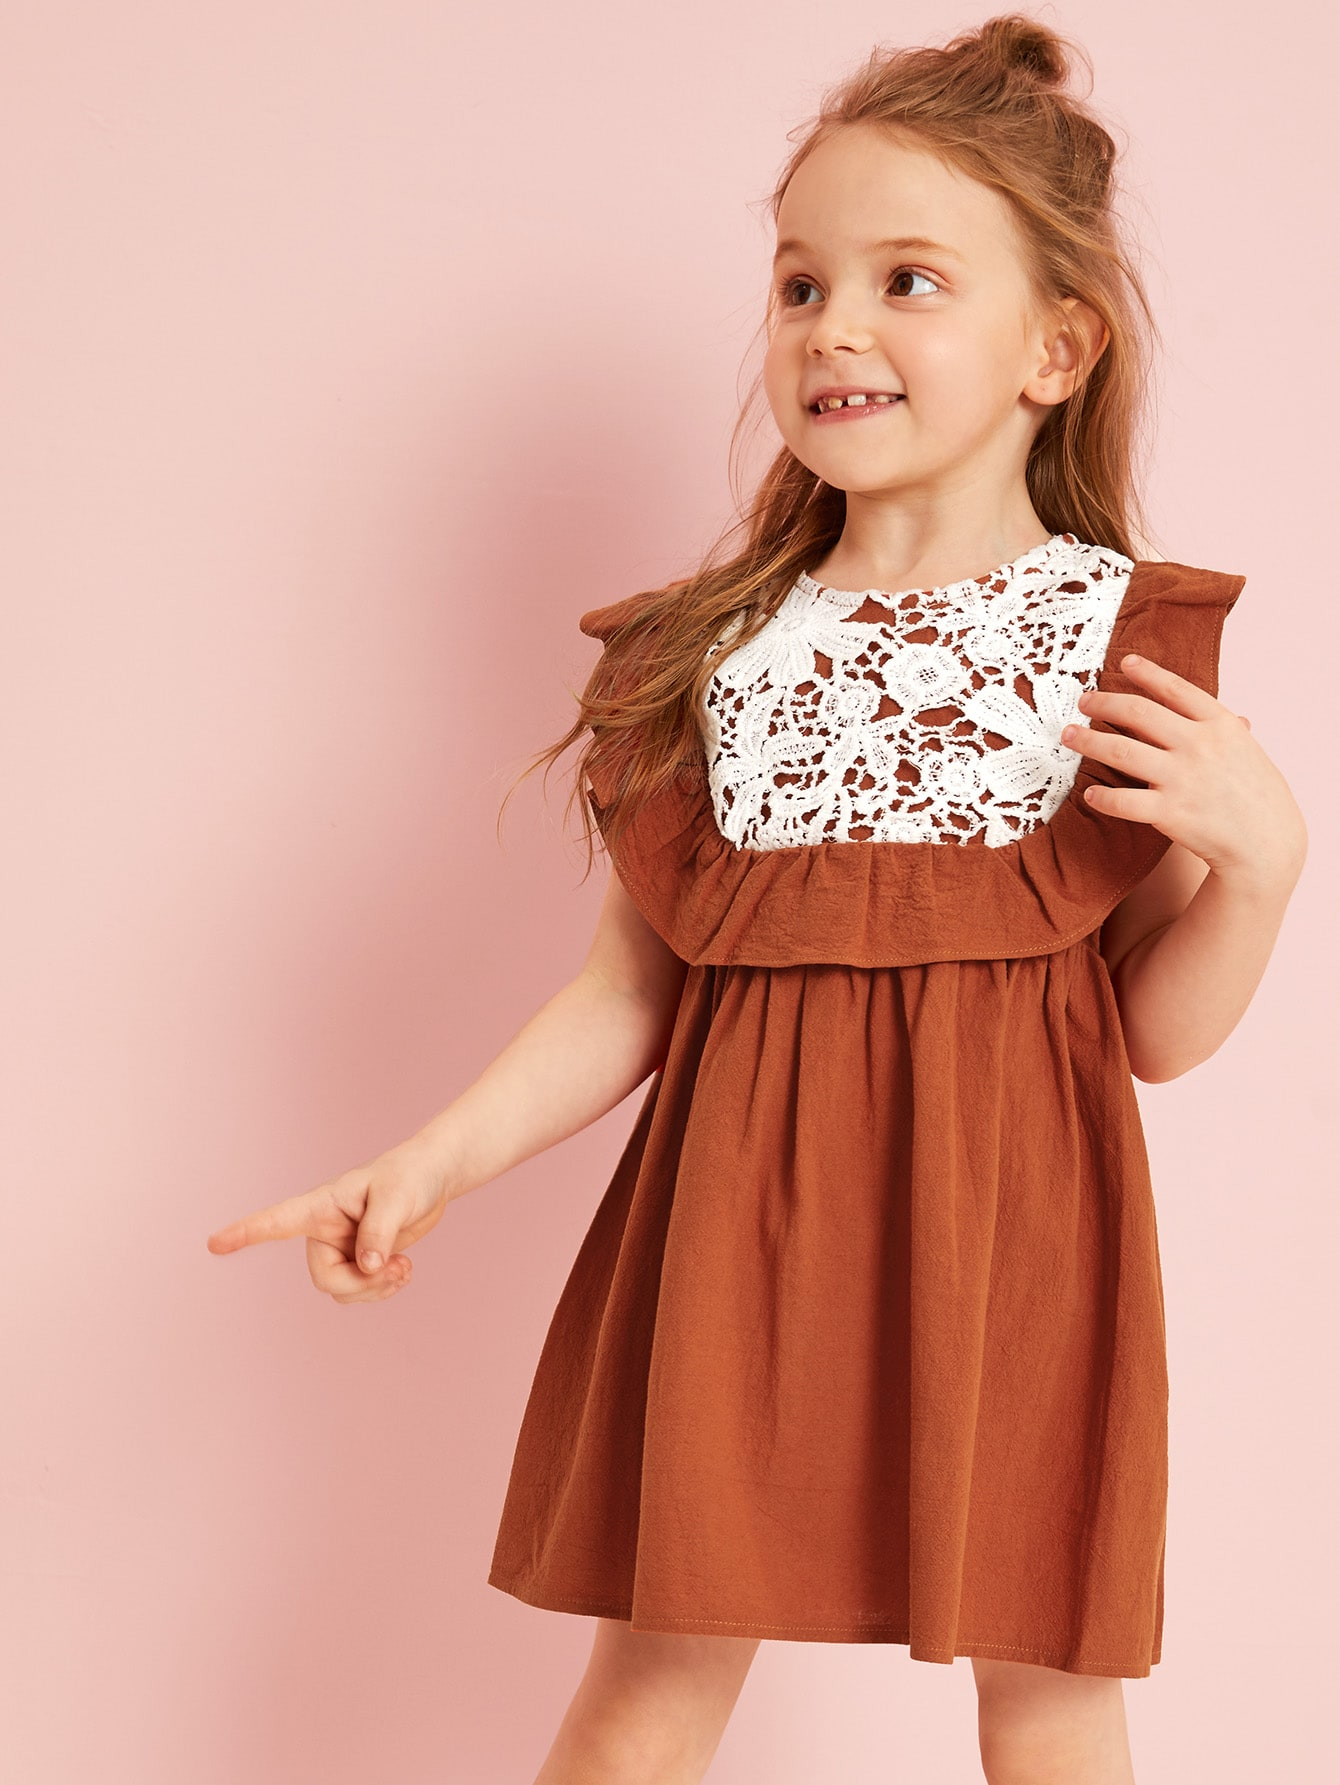 69dedf54f1 Toddler Girls Guipure Lace Yoke Ruffle Dress, Anastassiya - shein ...